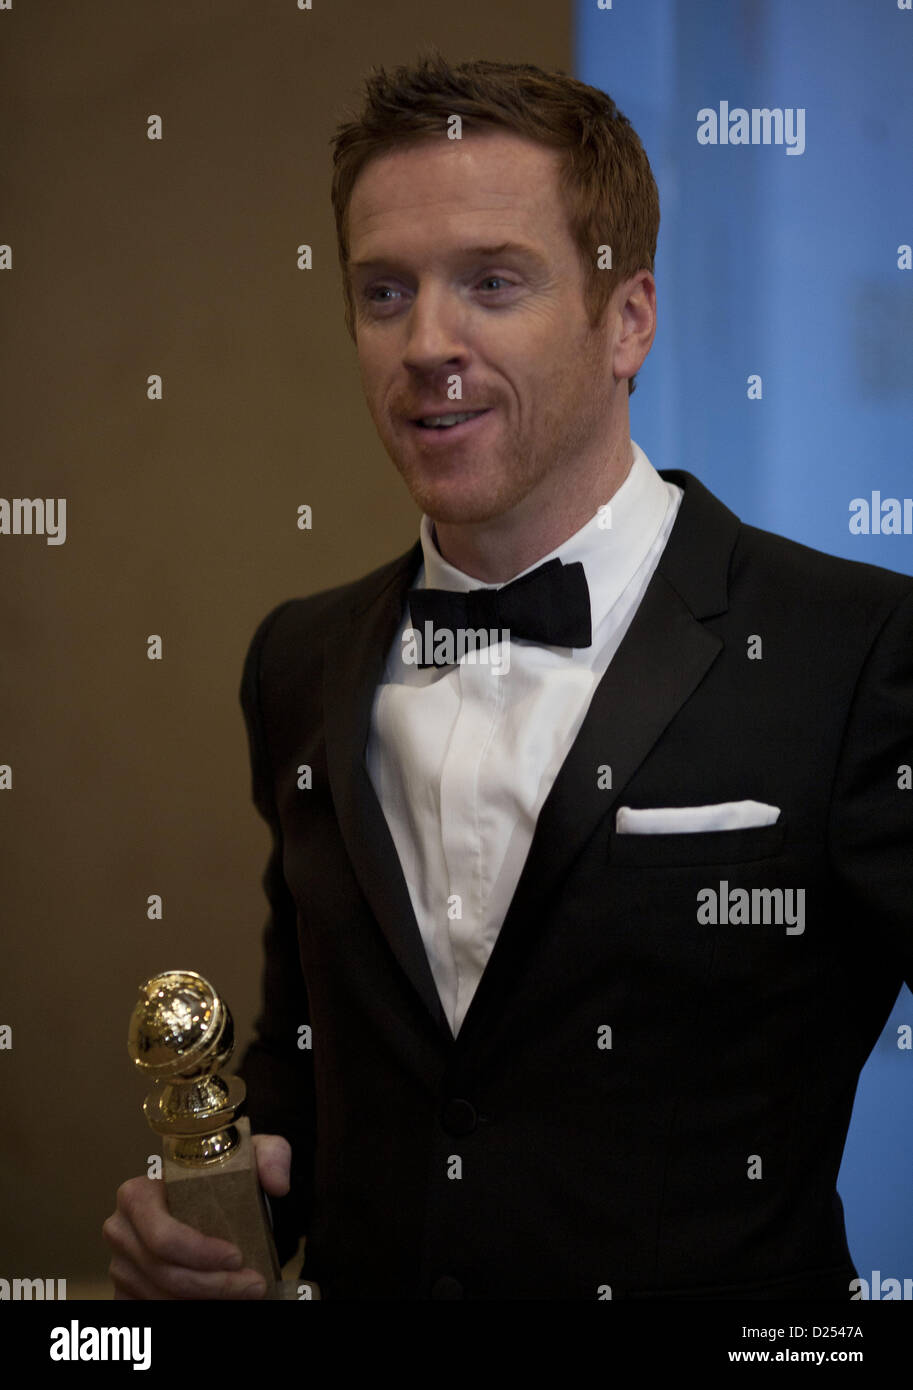 Beverly Hills, California, USA. 13th January 2013.  Actor Damian Lewis, winner of Best Actor in a Television Series, - Stock Image